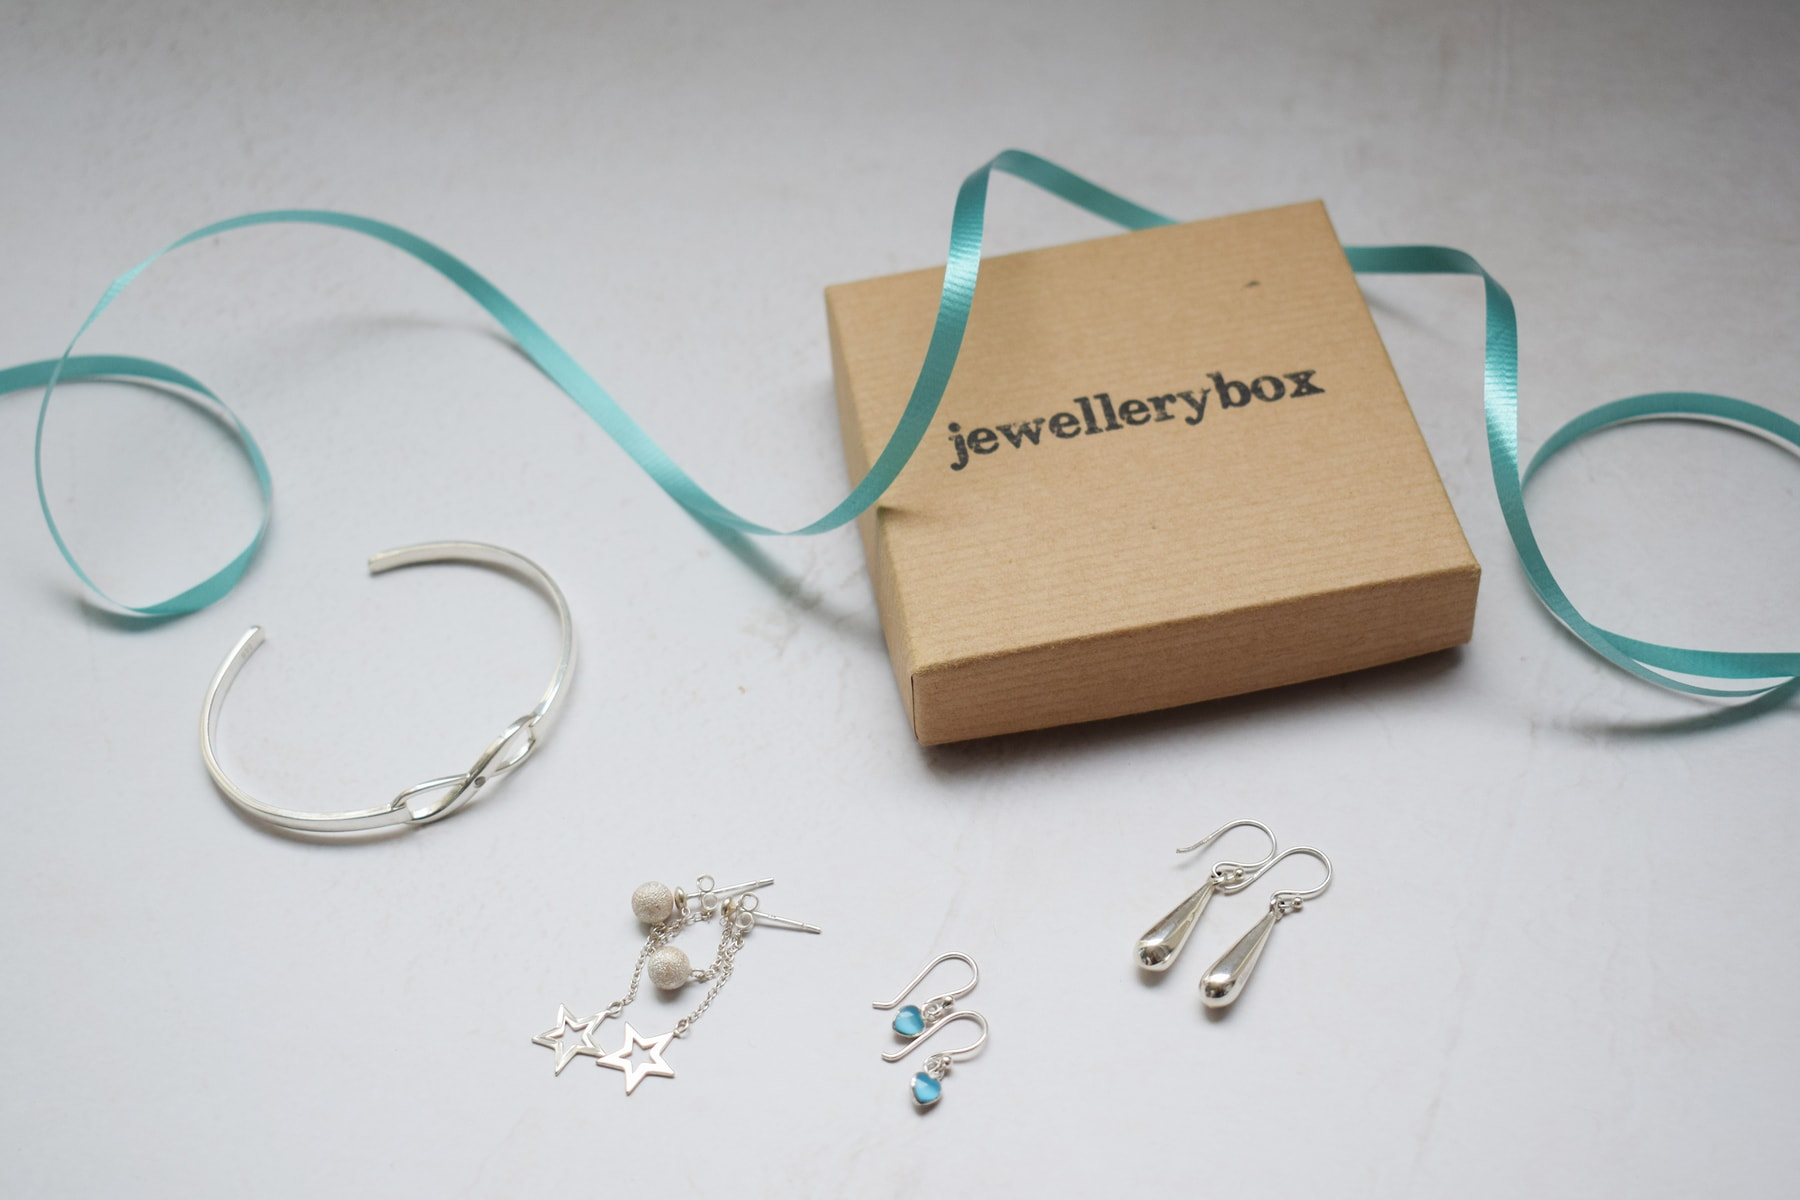 jewellery-box-ft